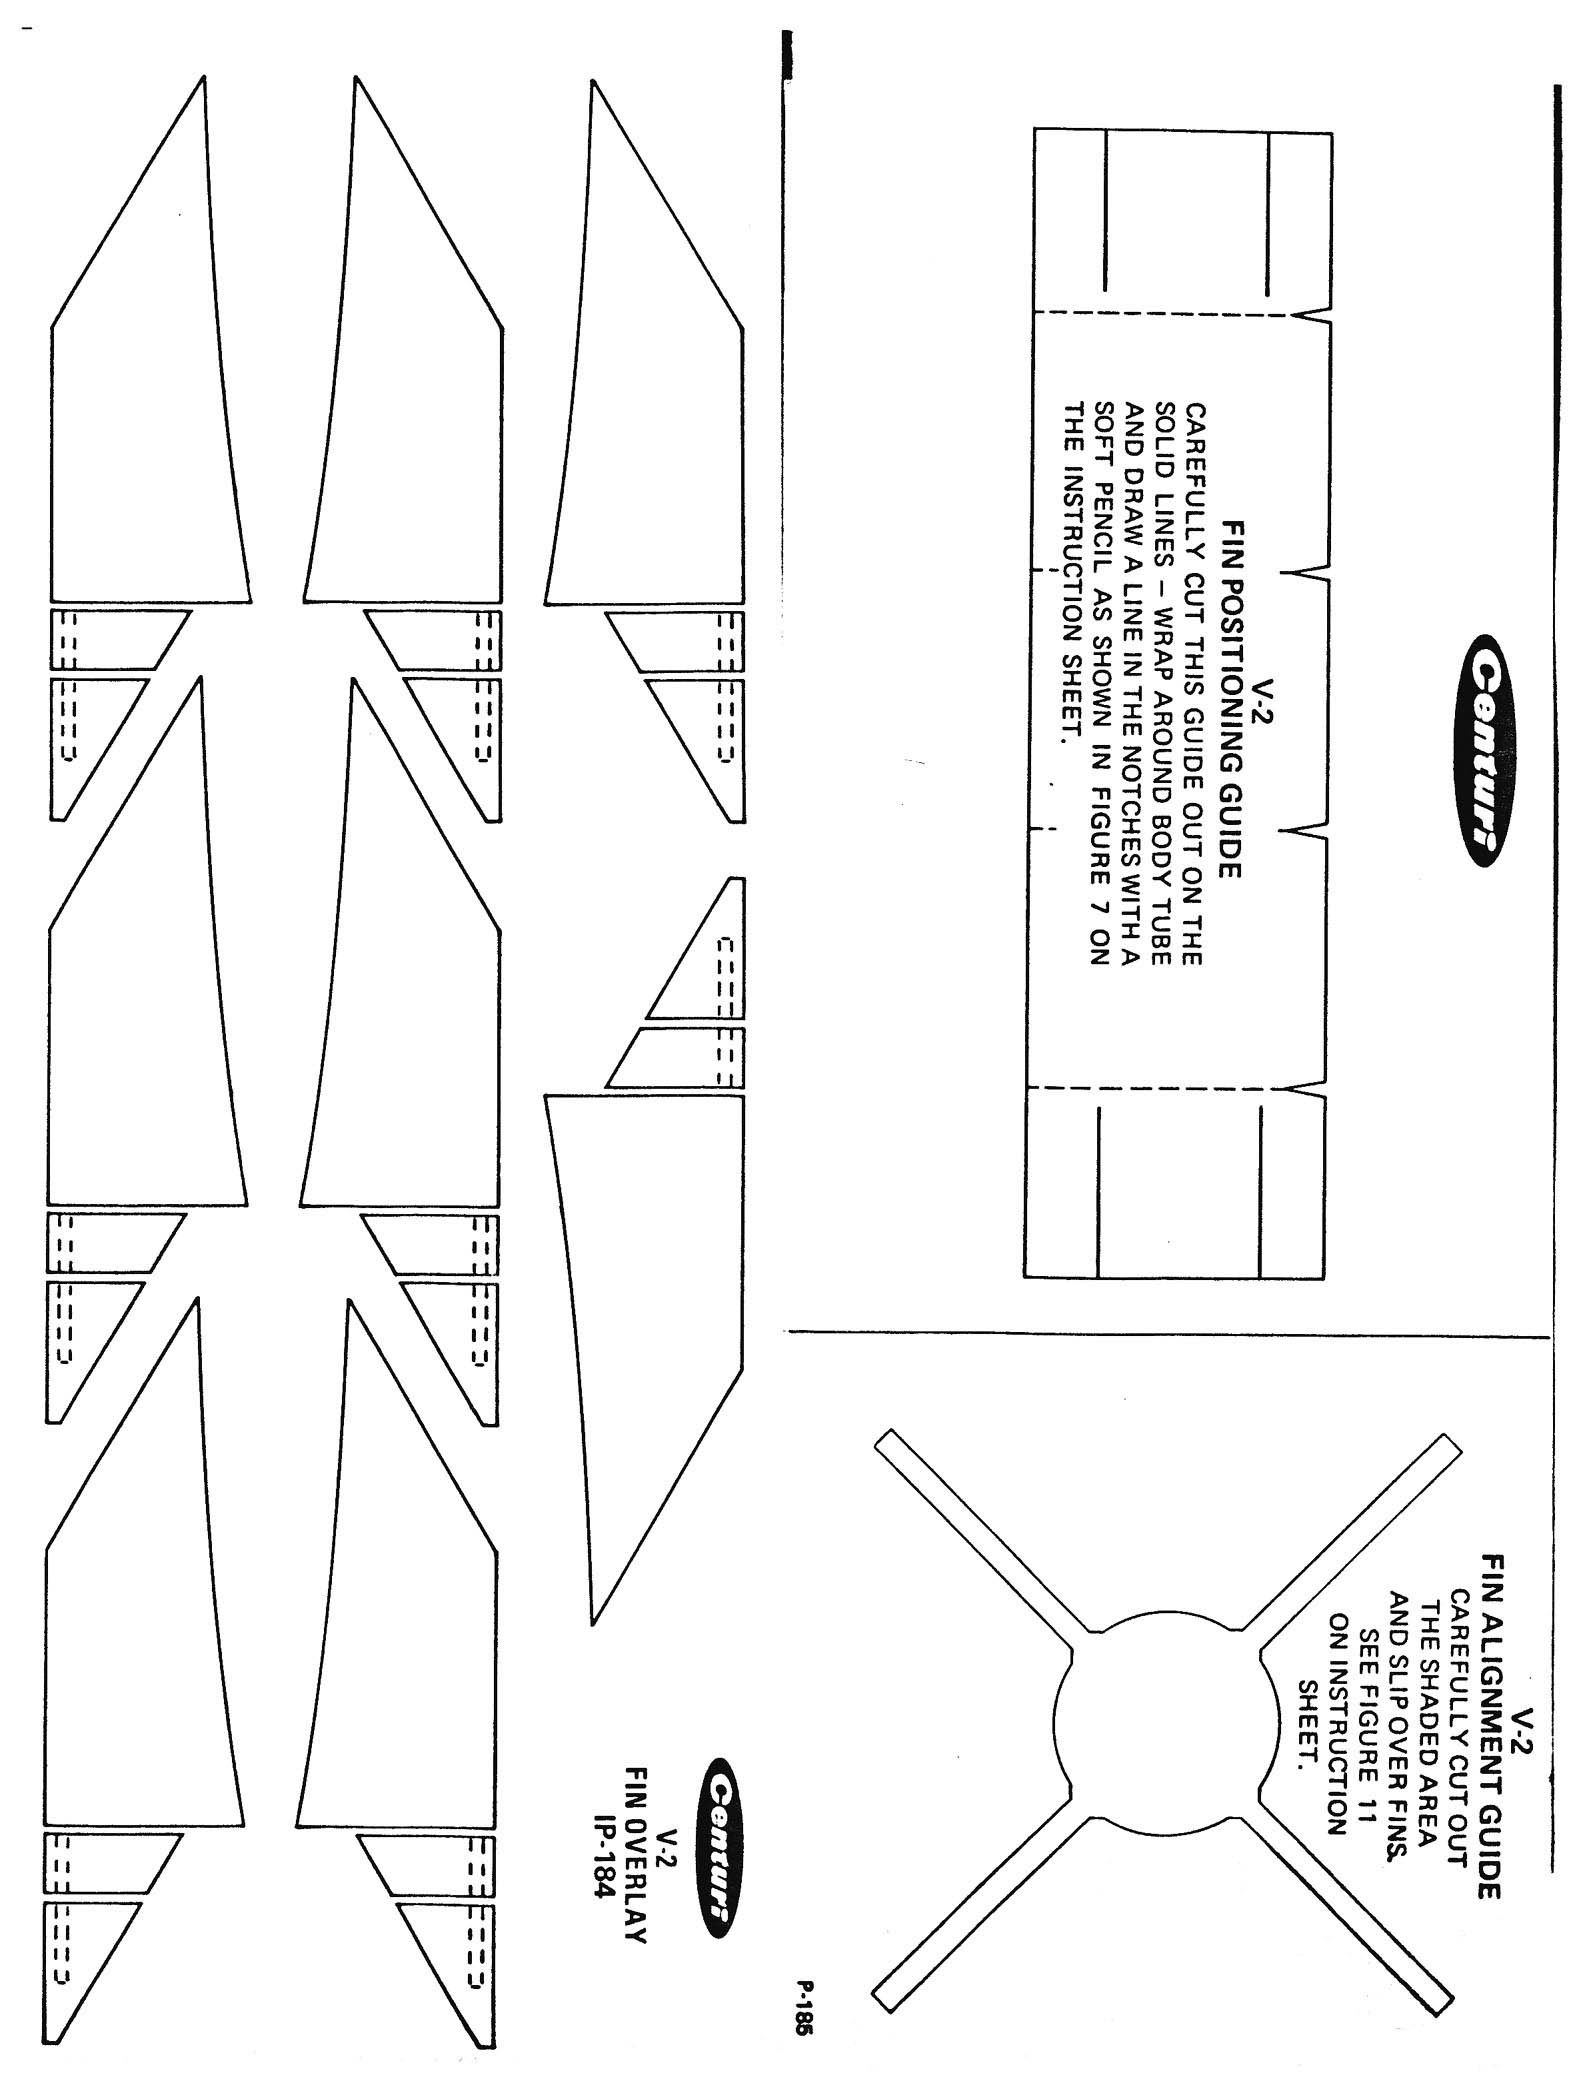 graphic regarding Rocket Template Printable identify Decals Templates